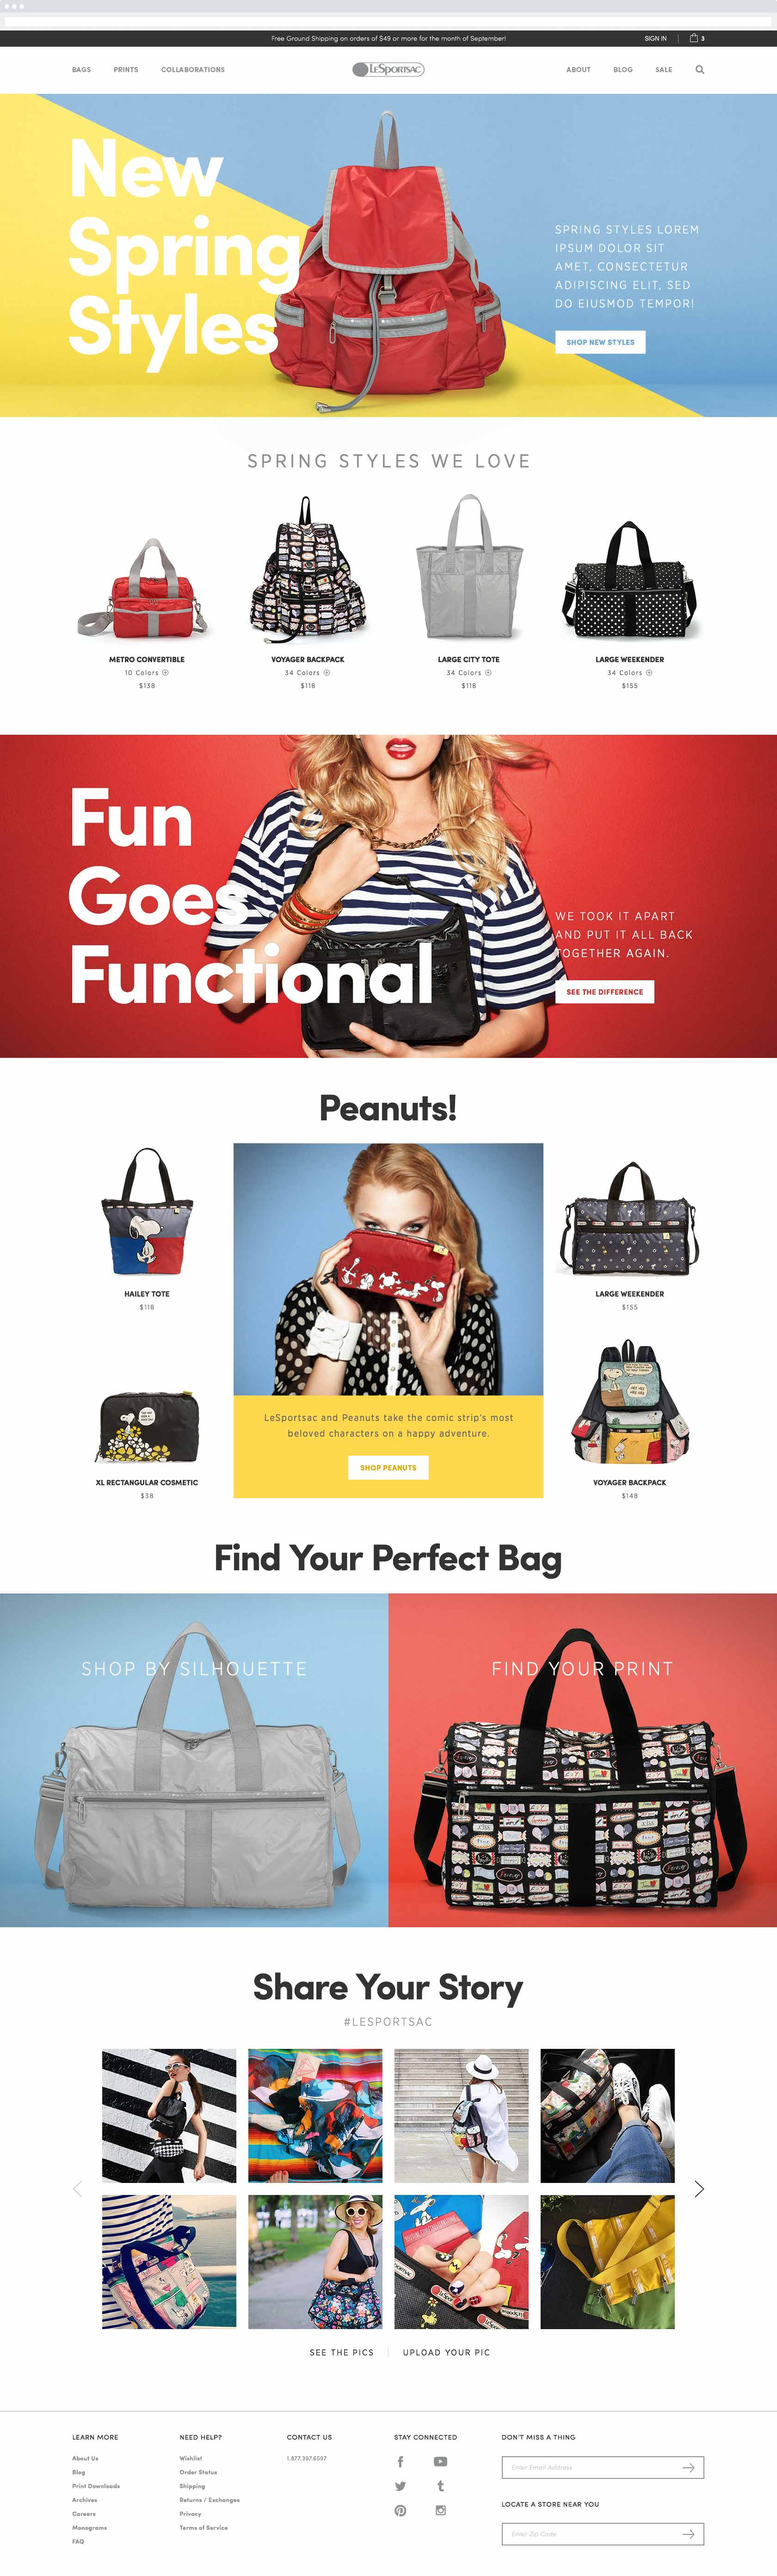 LeSportSac_Homepage_for_web.jpg